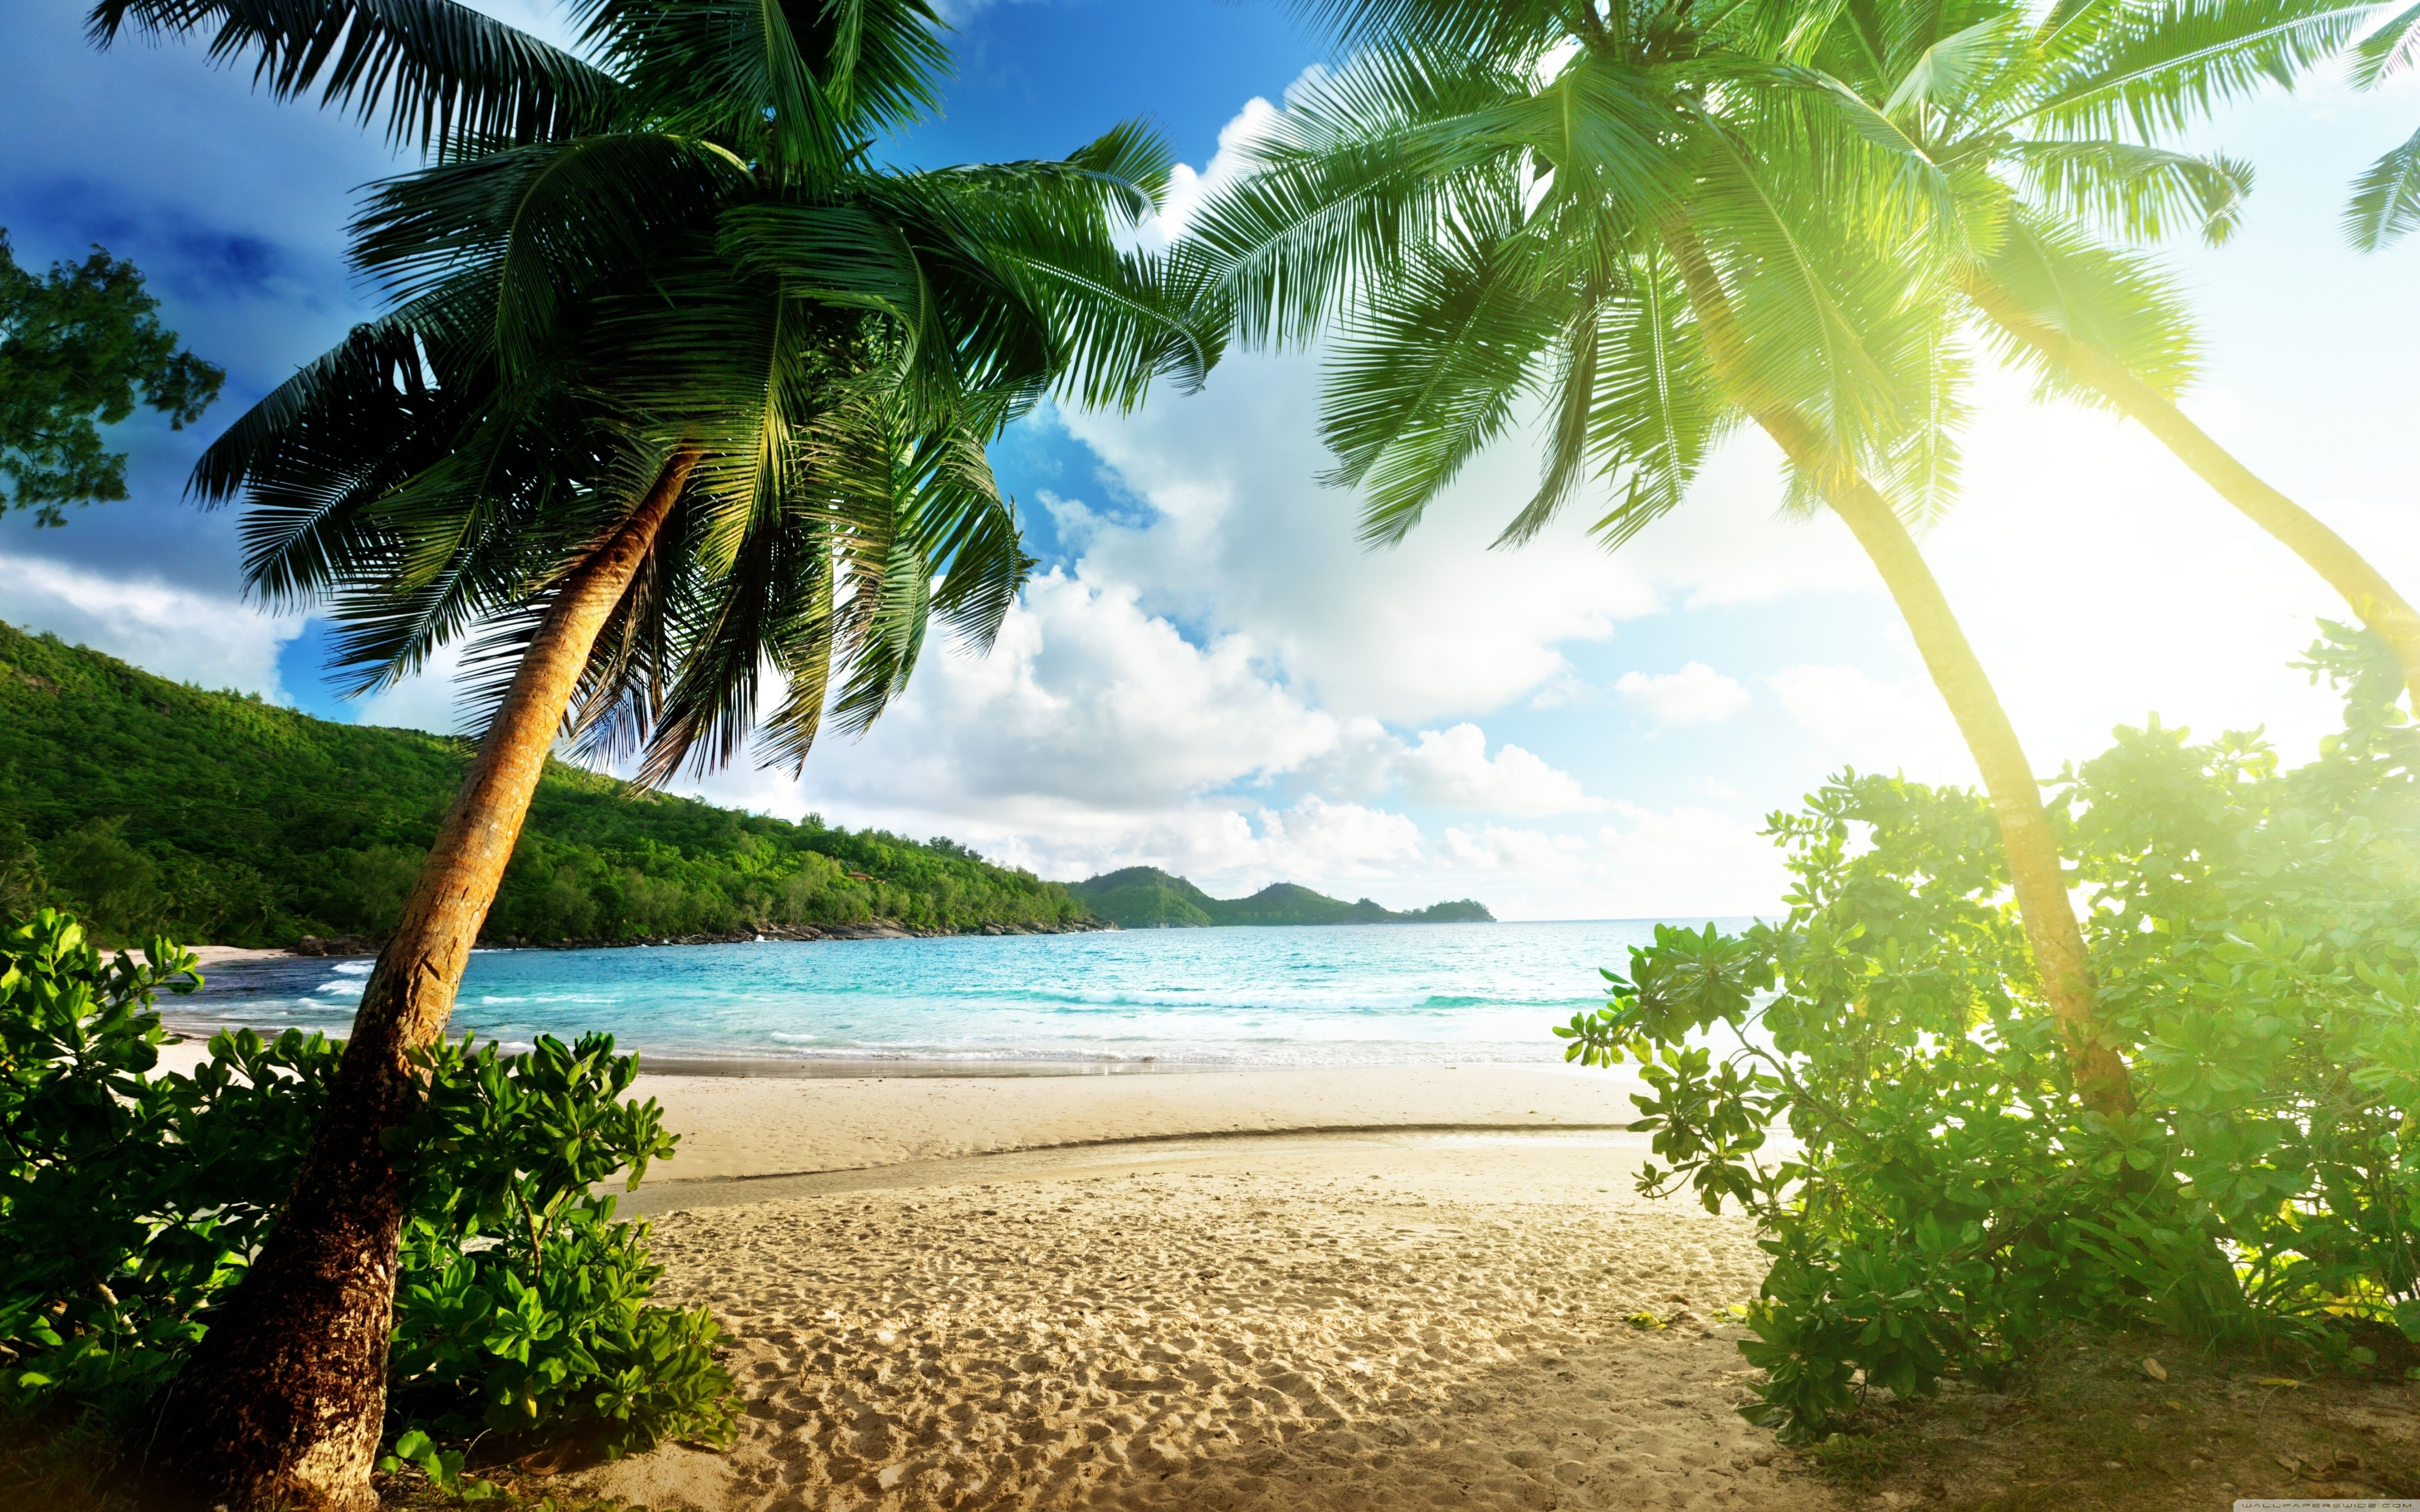 Laptop X Island Wallpapers Hd Desktop Backgrounds X With Images